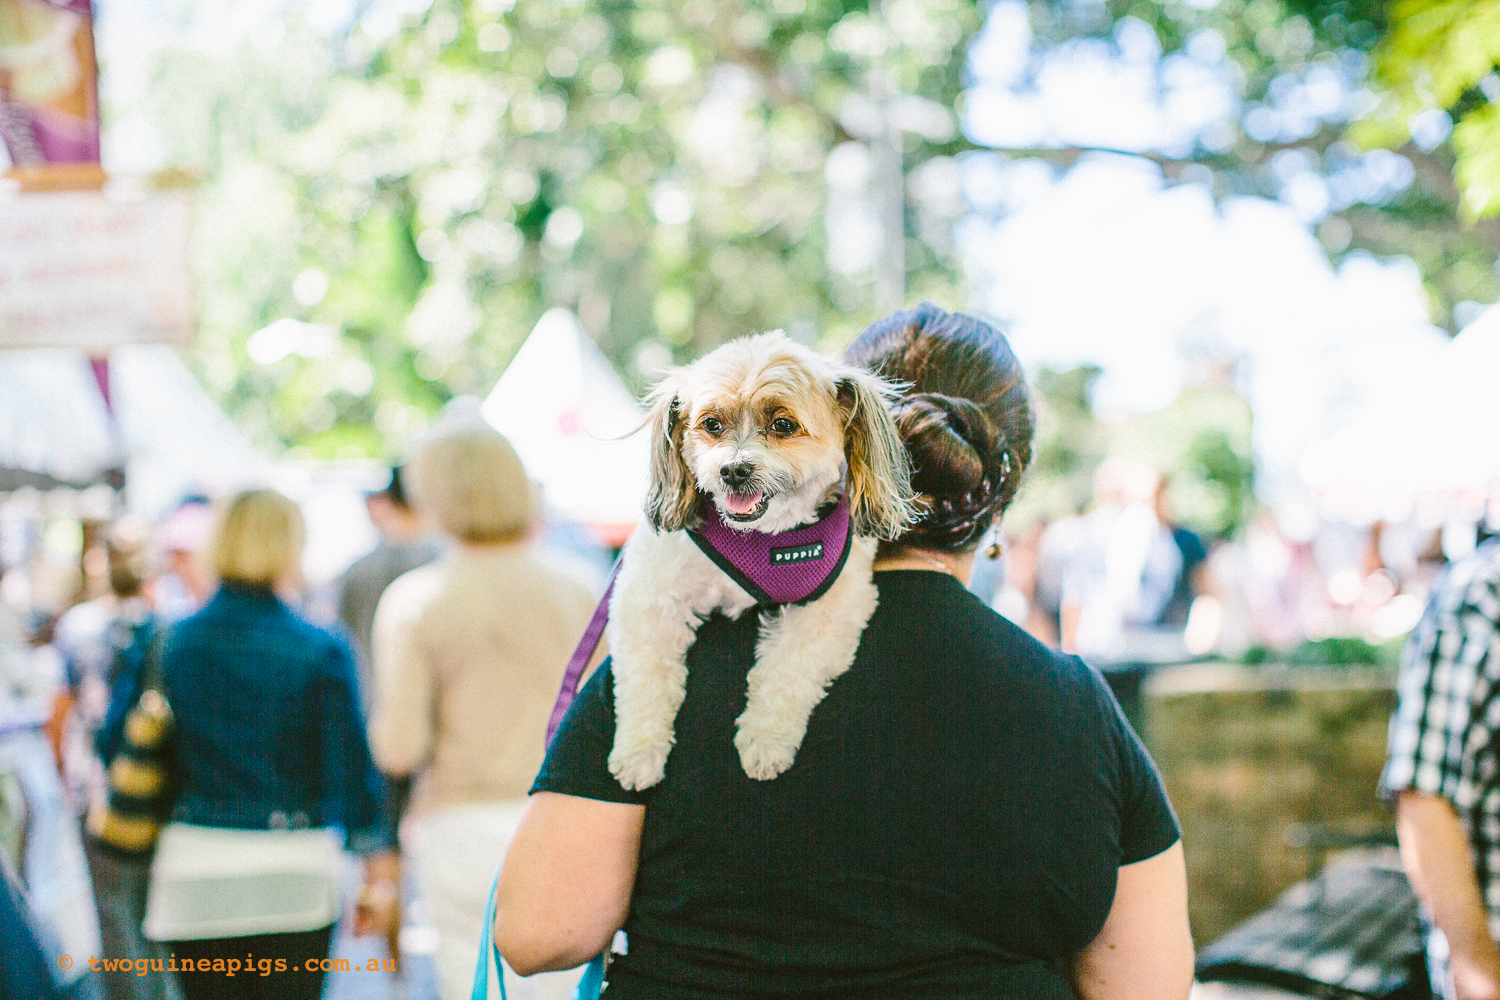 twoguineapigs_pet_photography_kxfestival_ppvh_20141012_1500-1.jpg